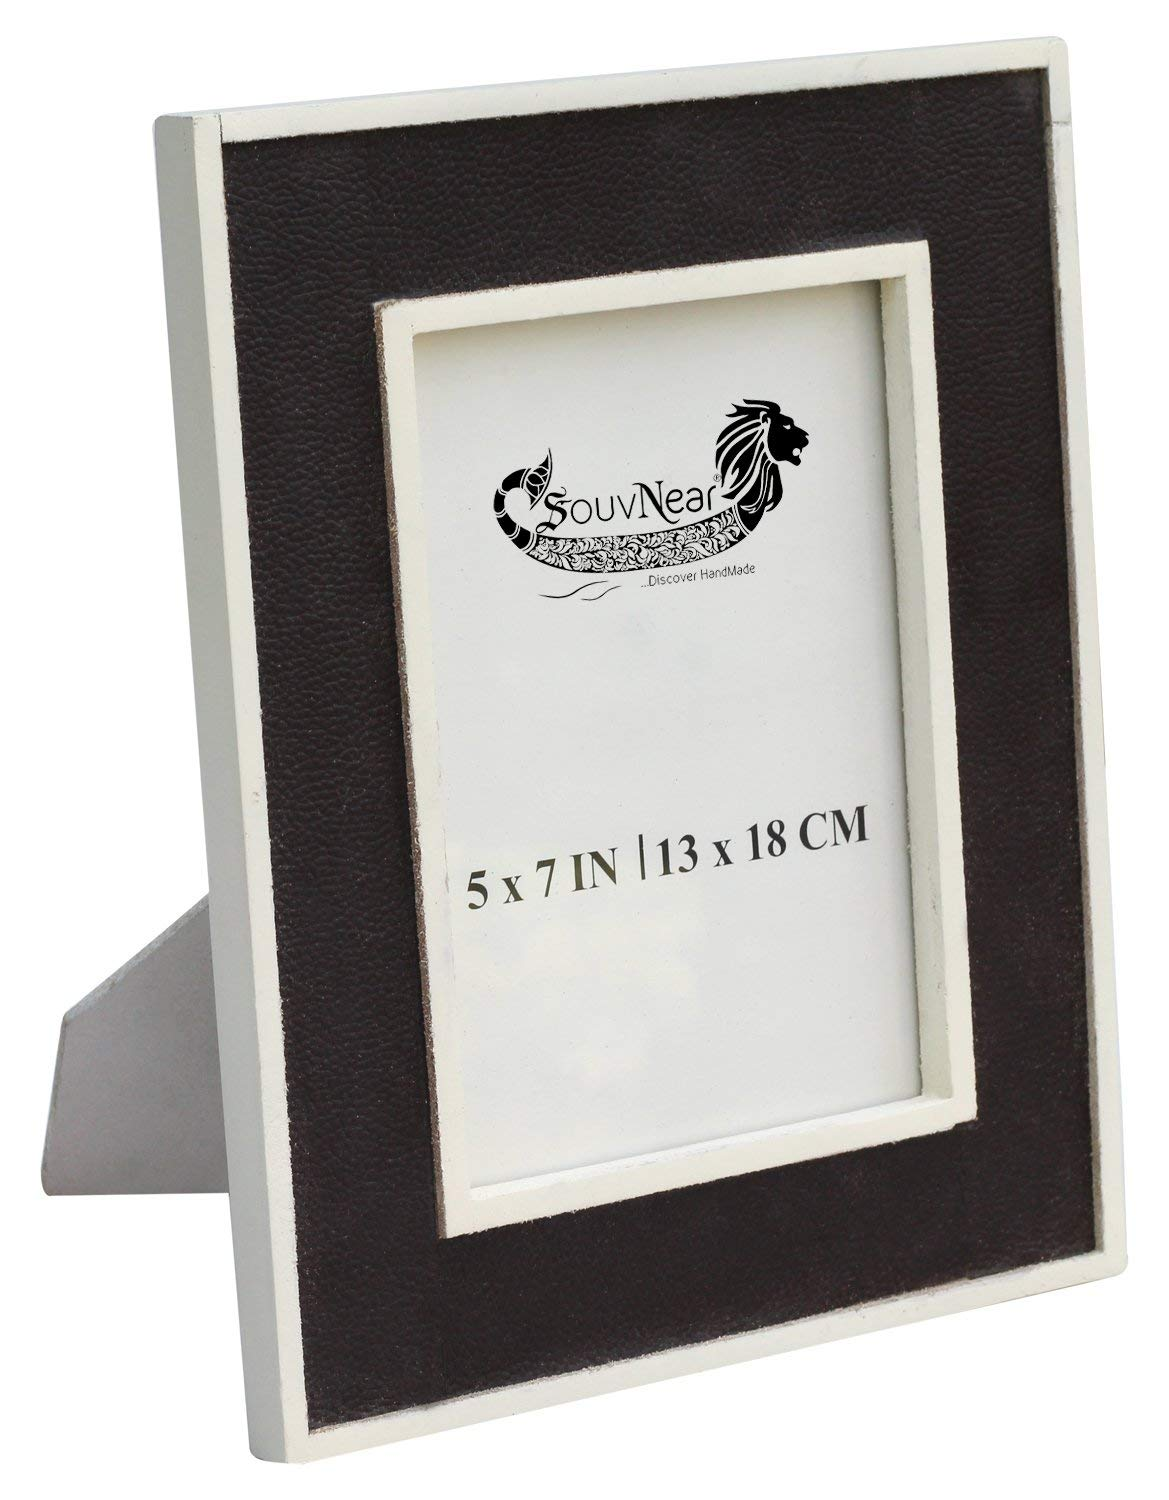 Souvnear Picture Photo Frames 4x6 White Rustic Brown Handmade Table Top Accessories